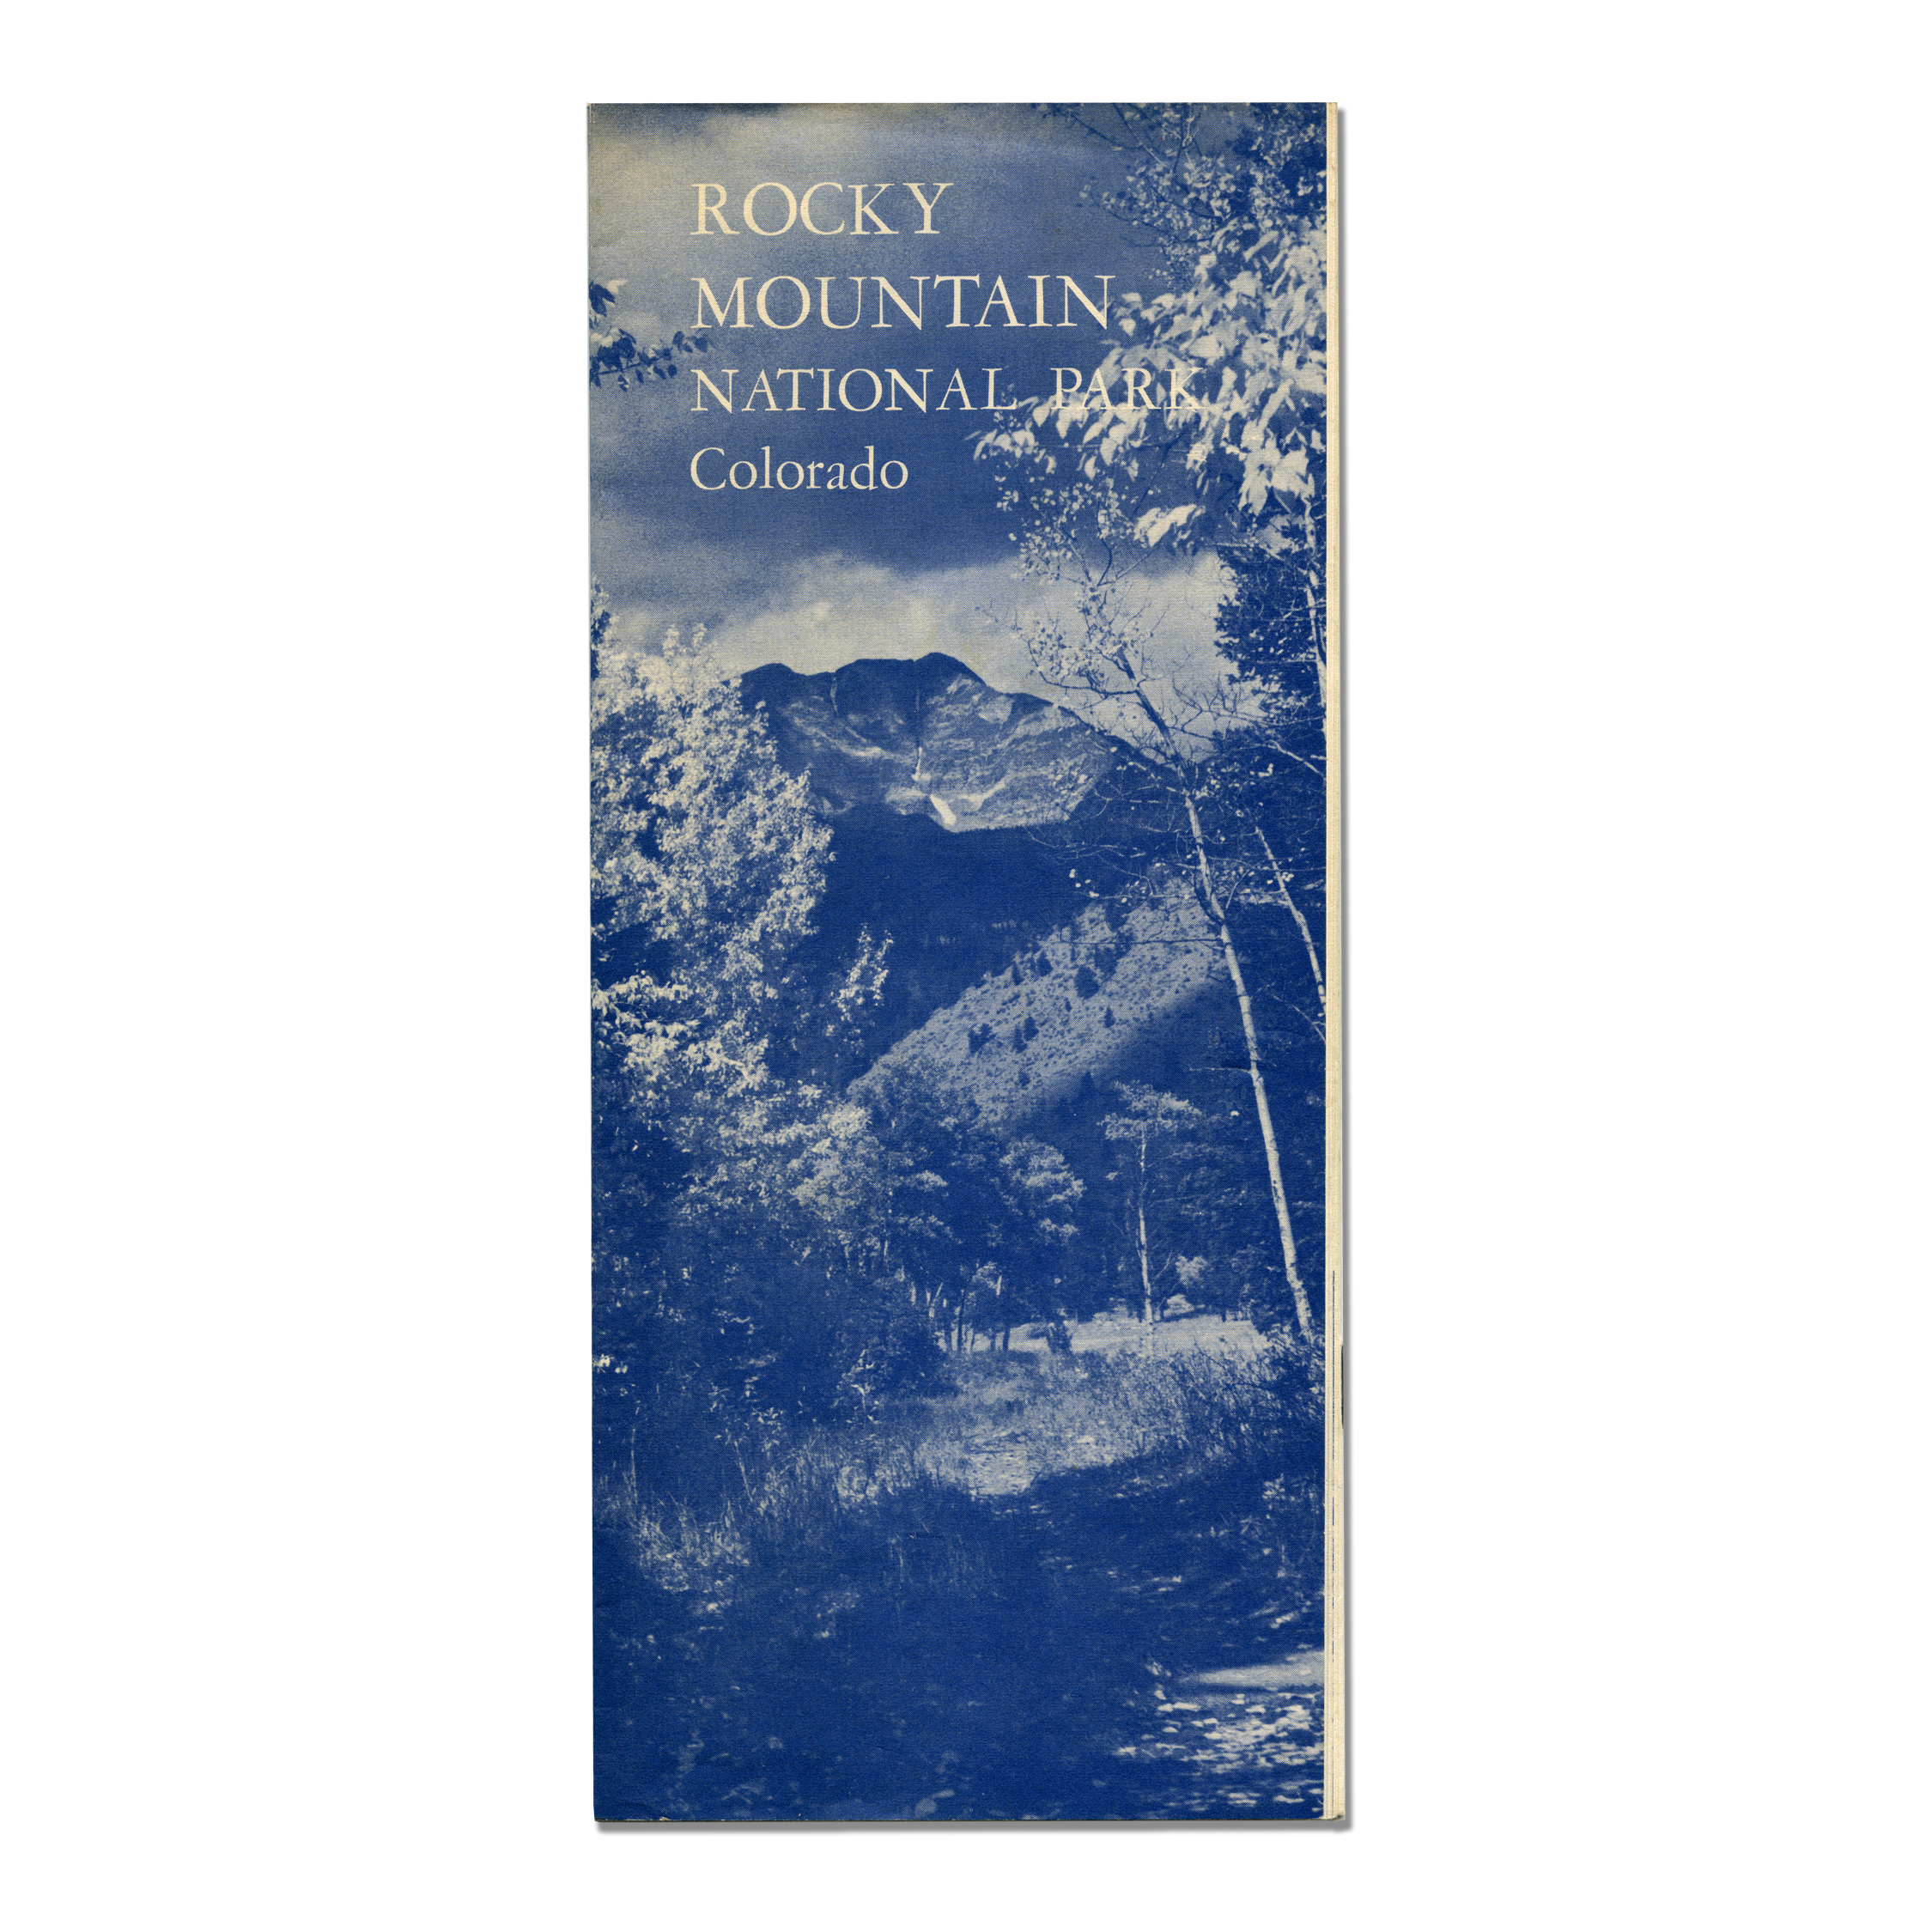 1963_rocky_mountain_national_park_brochure.jpg